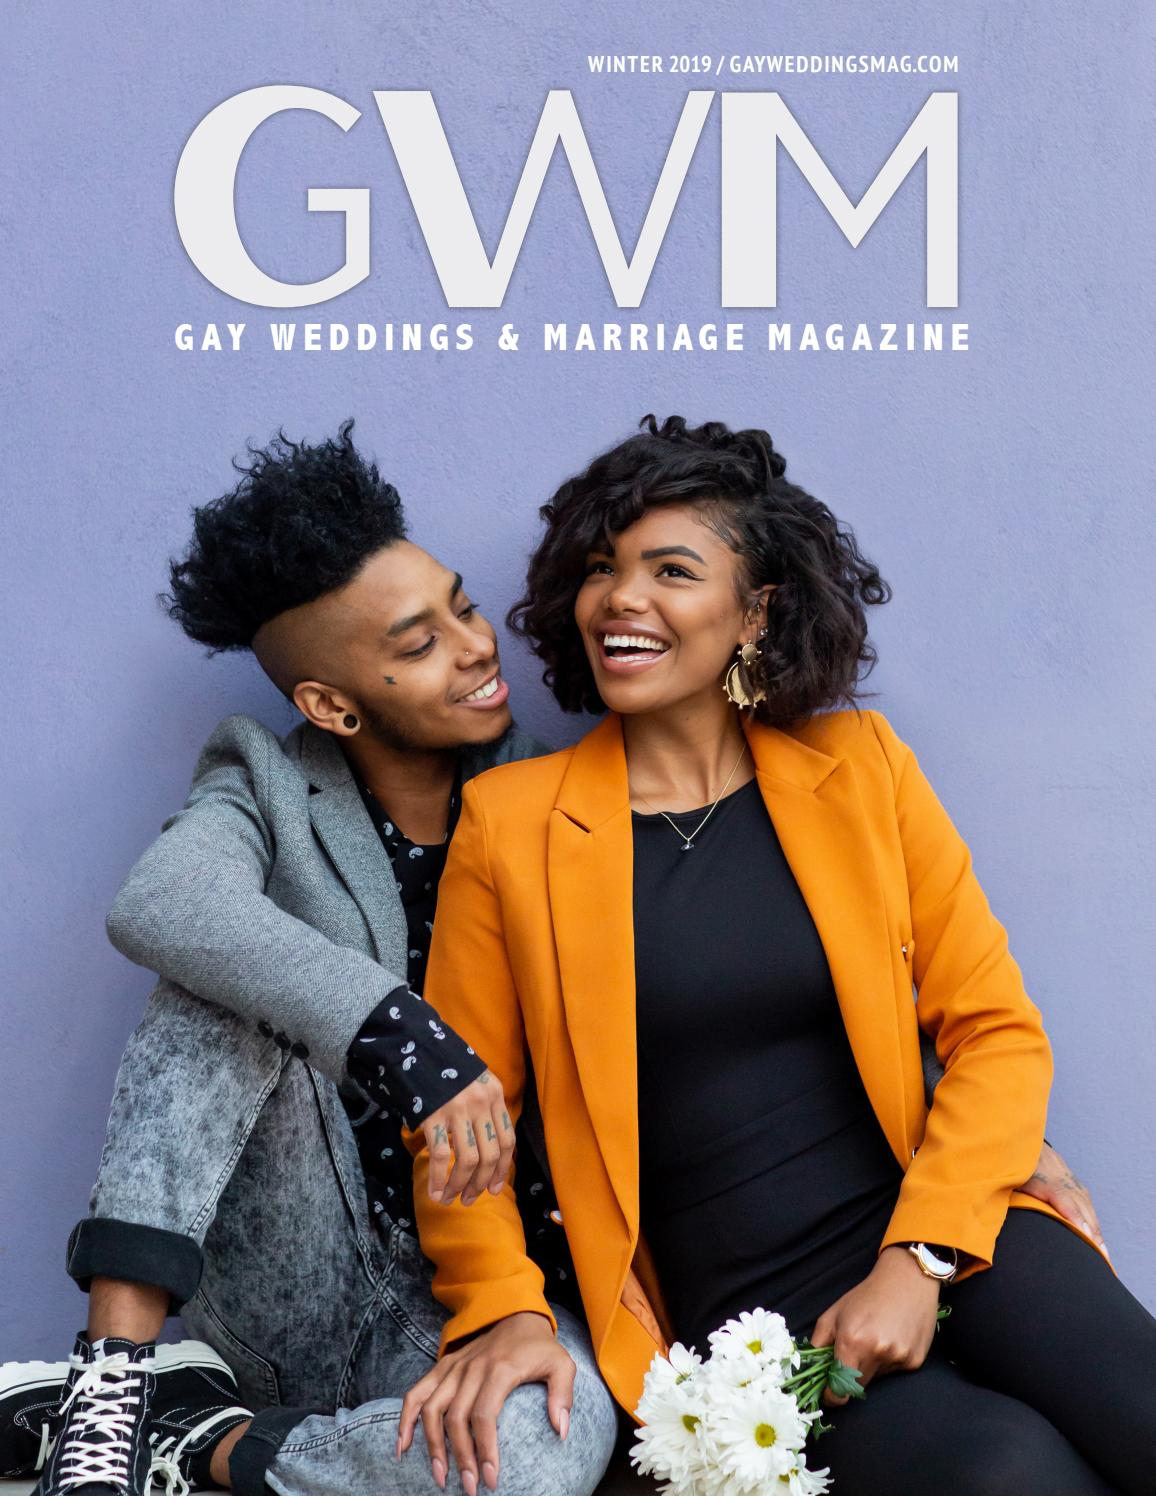 Gay Weddings And Marriage Magazine Winter 2019 By Gay Weddings And